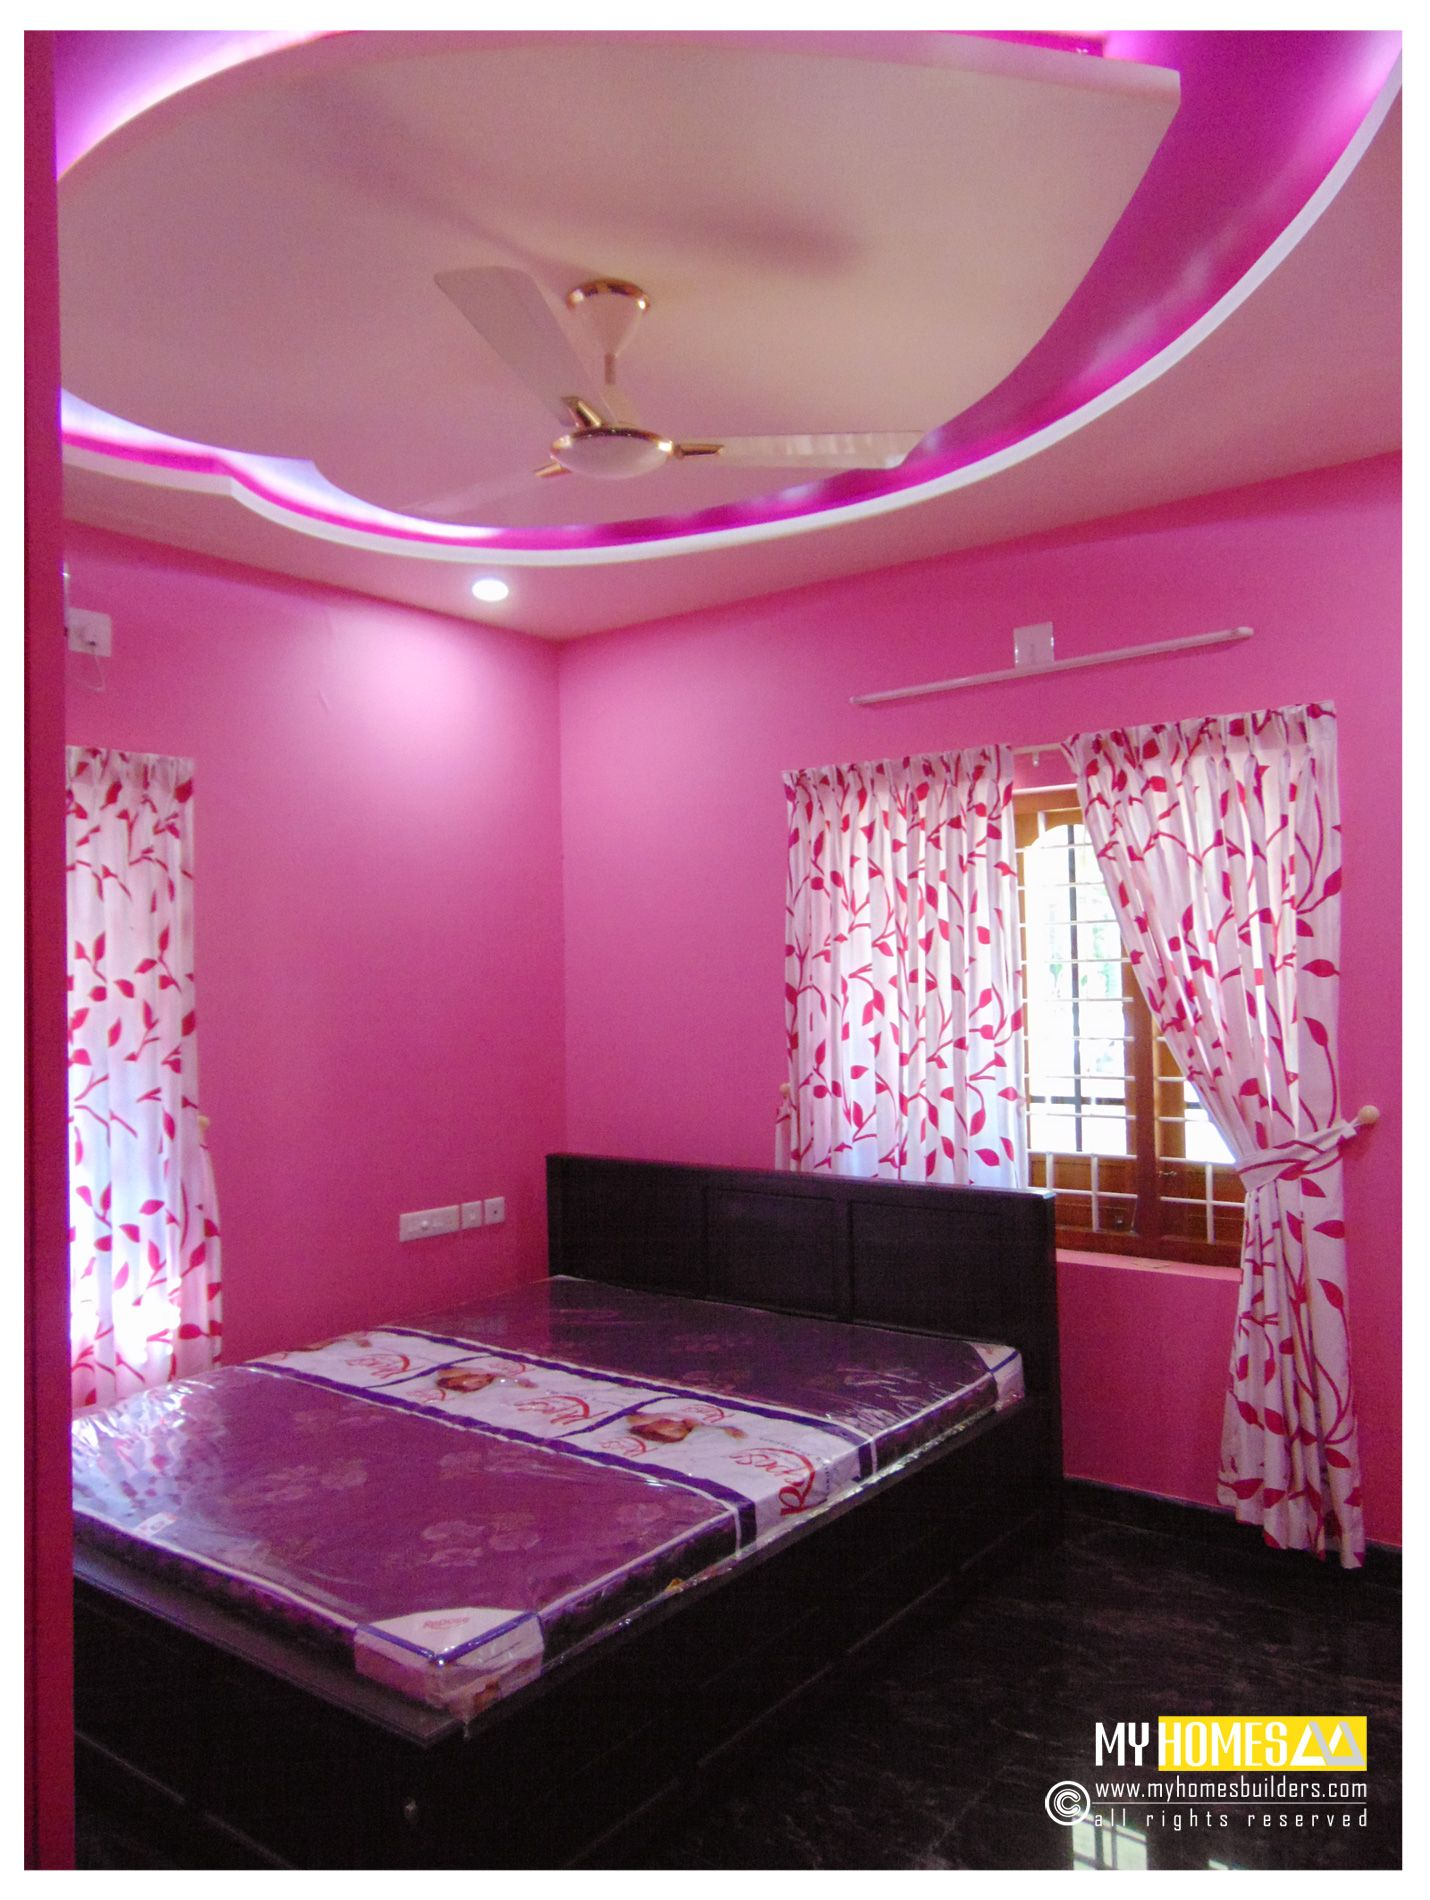 Dream rooms. Kerala Bedroom Interior Designs Best bed room interior designs for